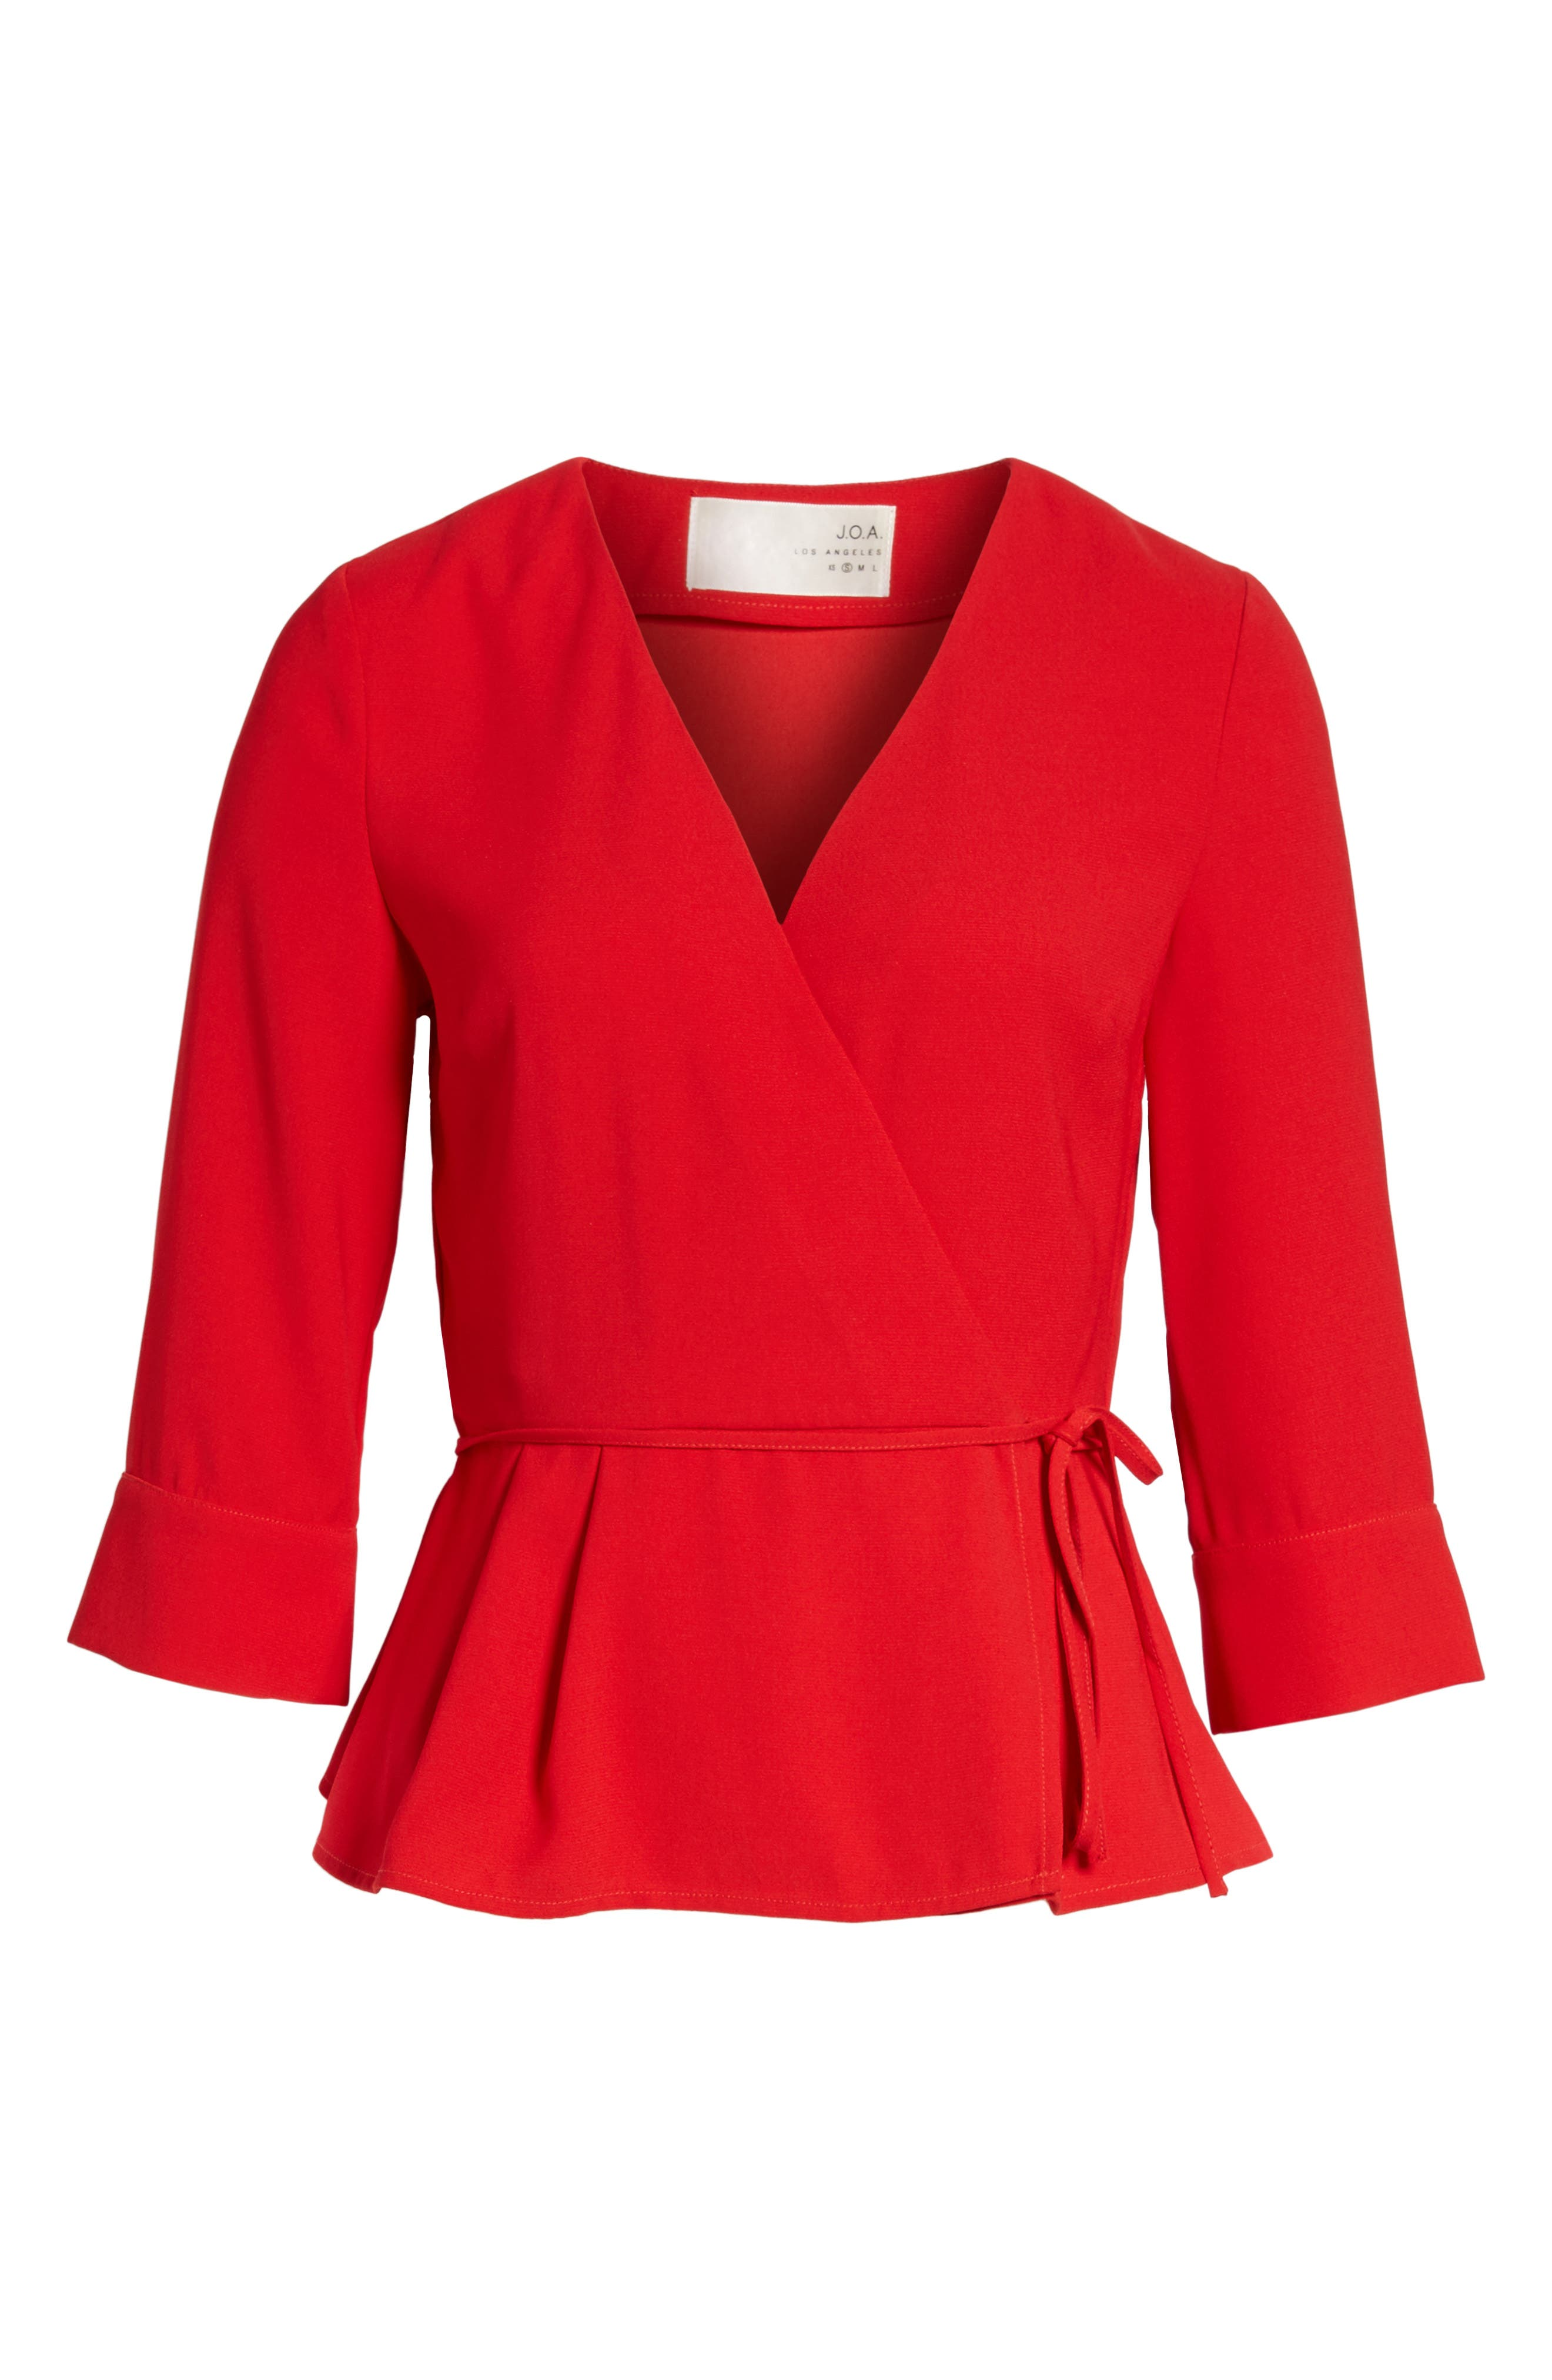 Wrap Top,                             Alternate thumbnail 6, color,                             Red